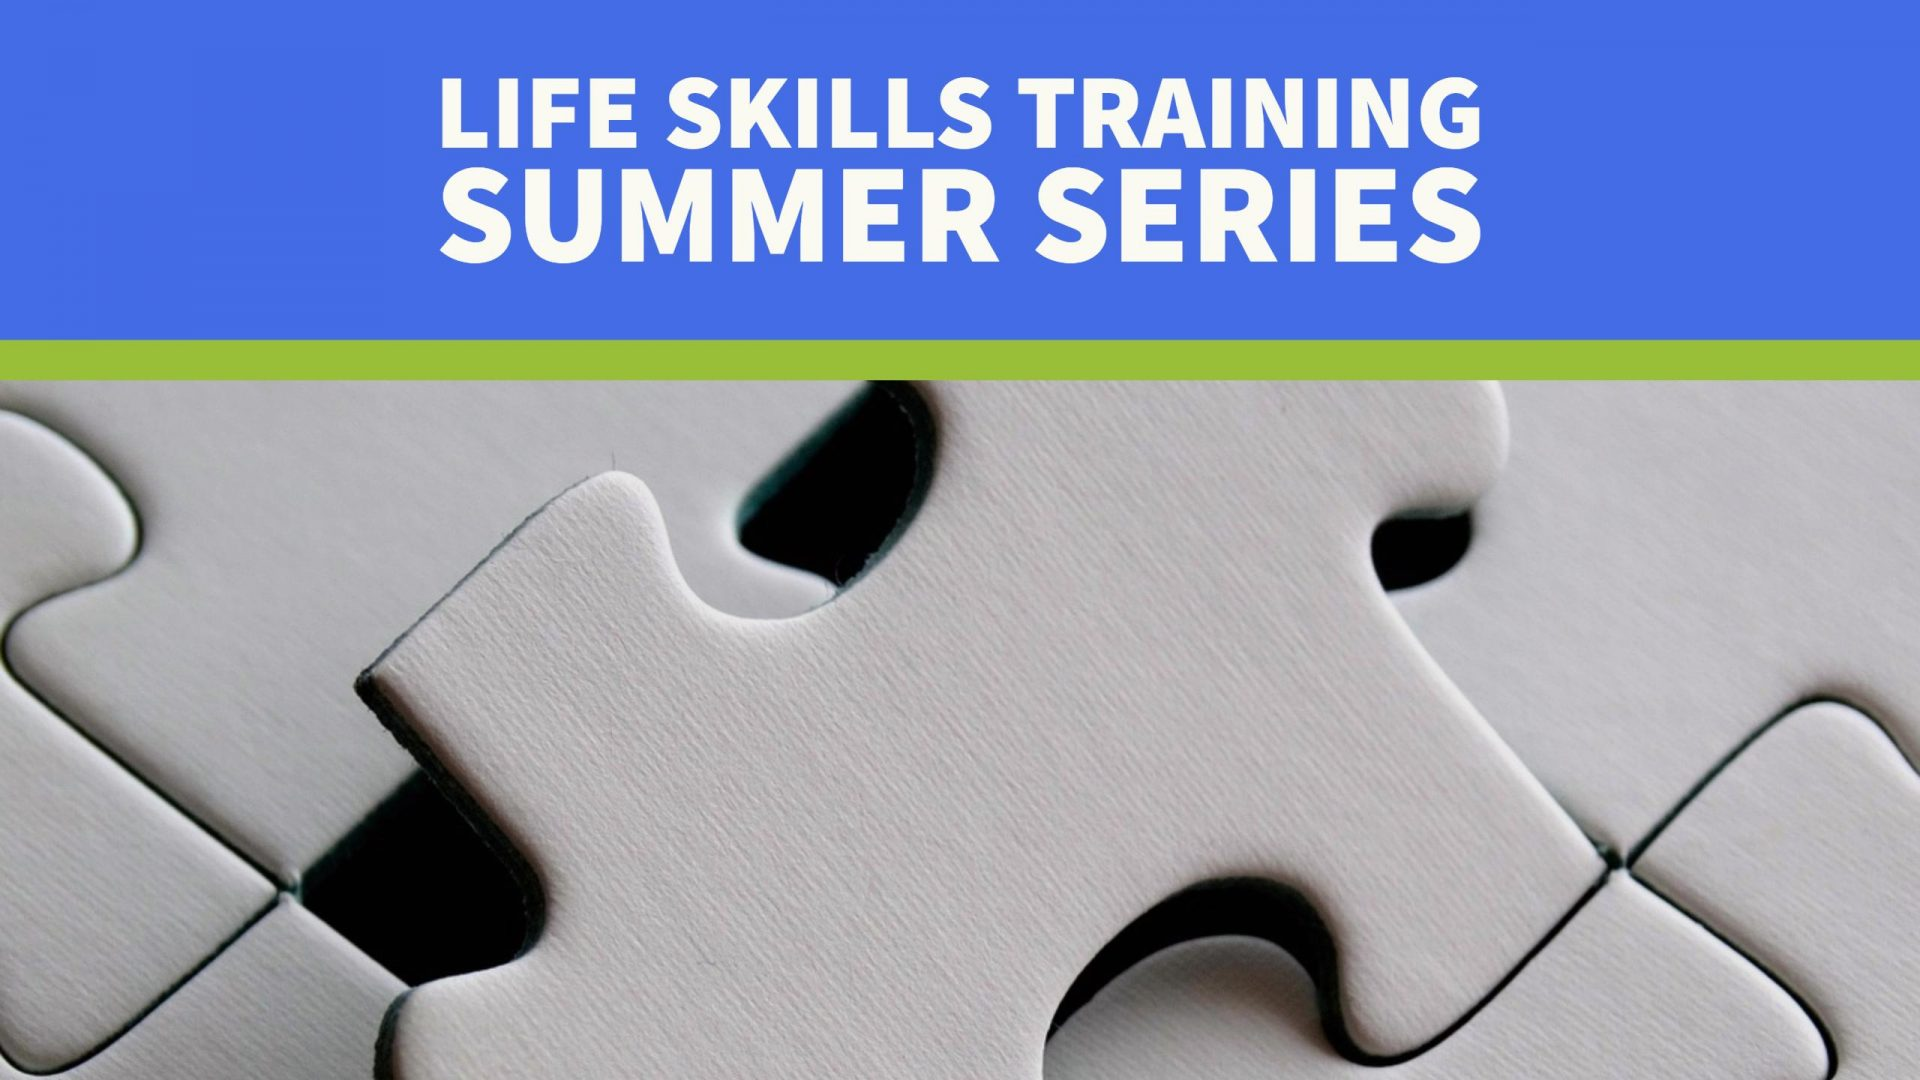 Life Skills Training Summer Series Header - close-up image of a white puzzle pieces with a blue text box above the image with text: Life Skills Training Summer Series